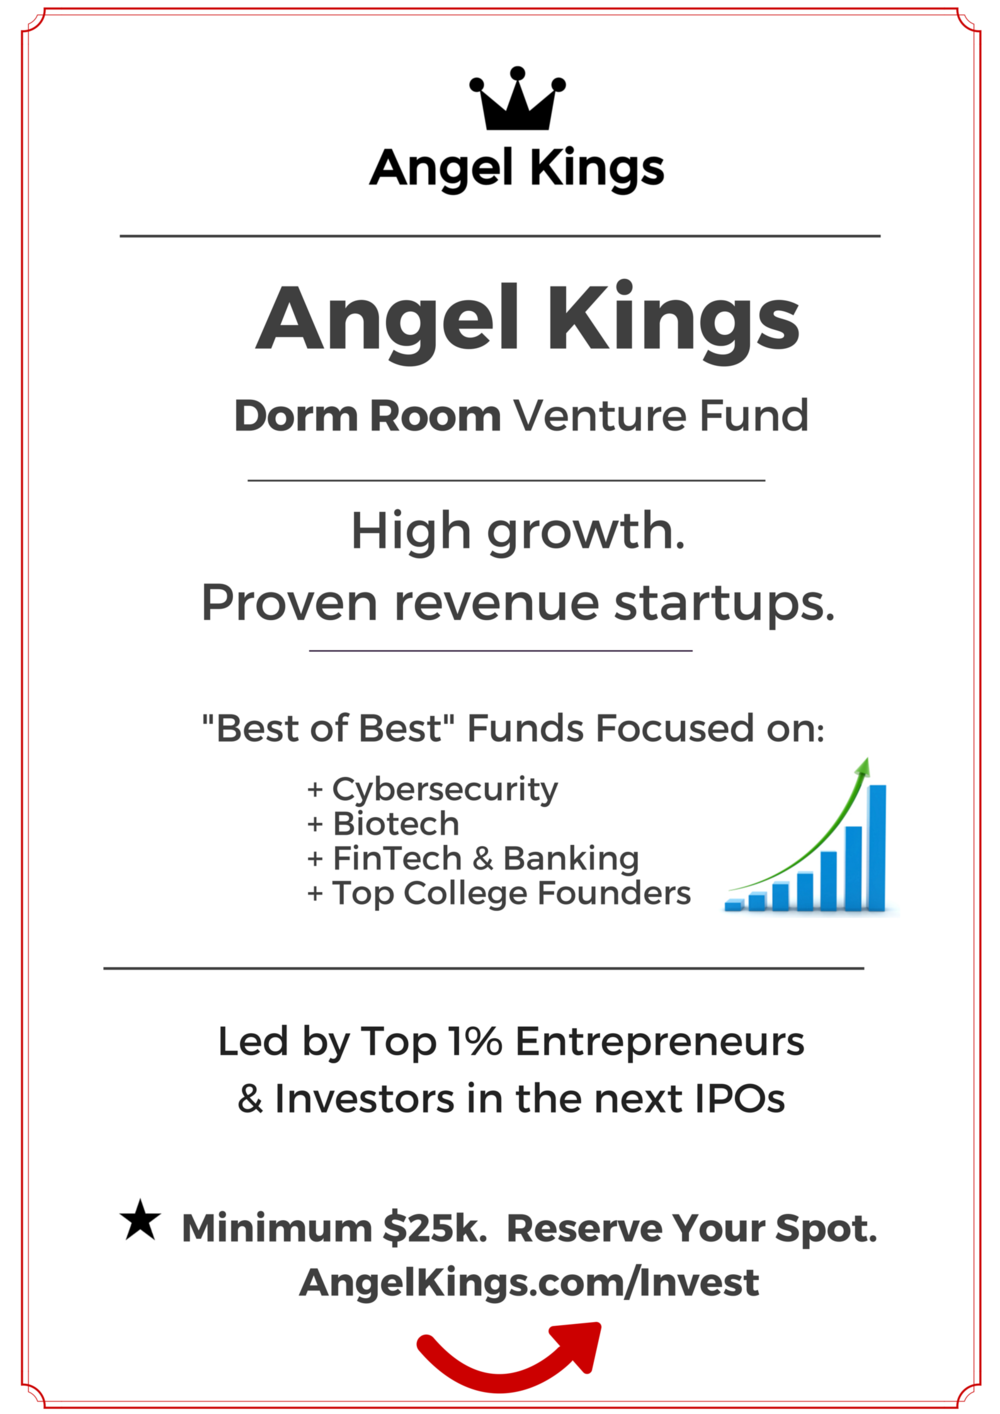 door-room-venture-capital-fund